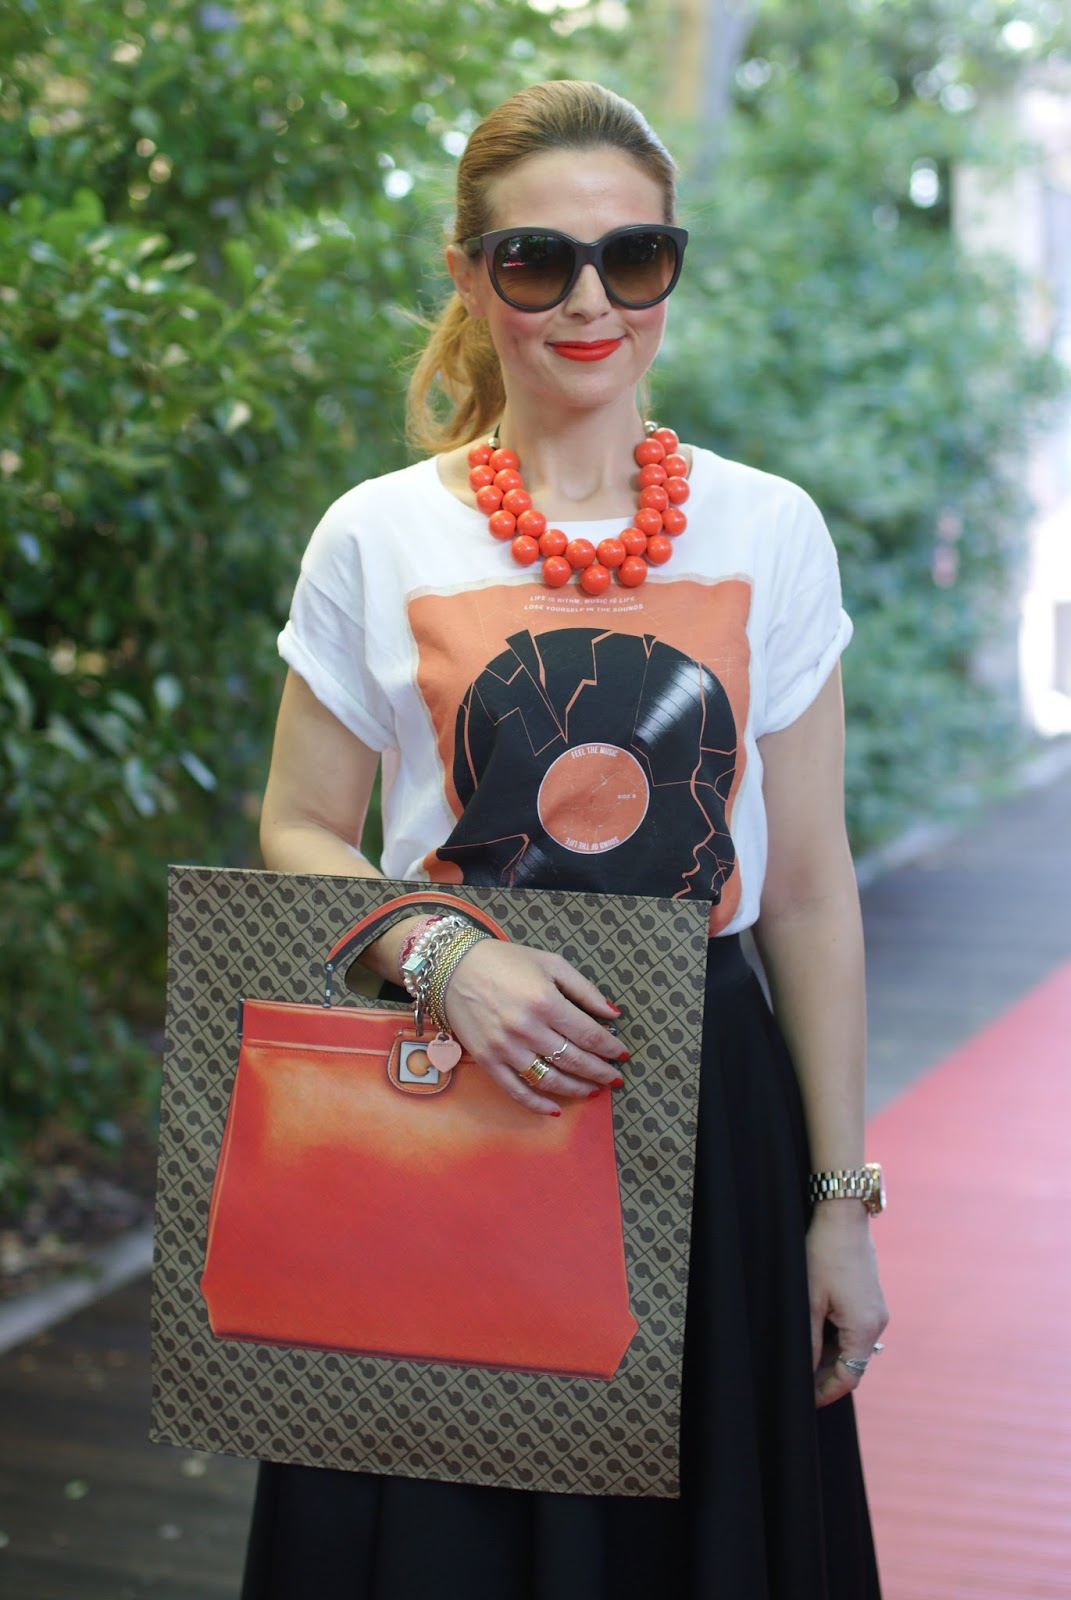 Gherardini bag, DodiciDodici bag, Gherardini piattina anniversary 130, orange flat bag, Asos skirt, Fashion and Cookies fashion blog, fashion blogger